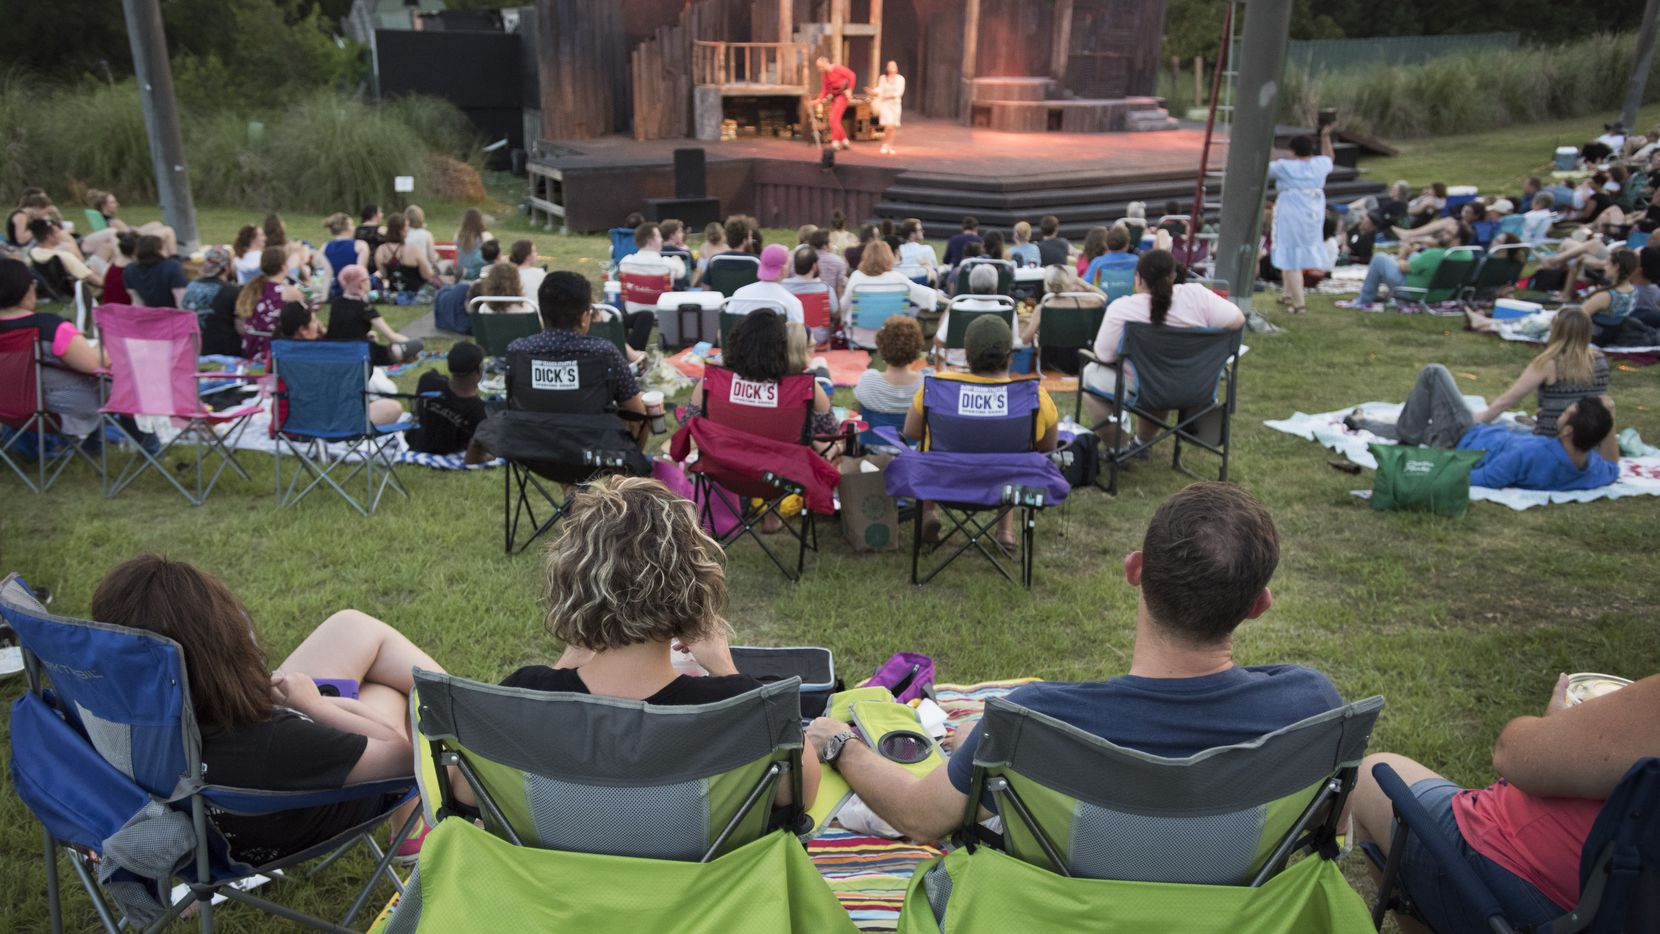 Theatre fans at the Samuell Grand Amphitheater in Dallas, Texas on June 23, 2017.